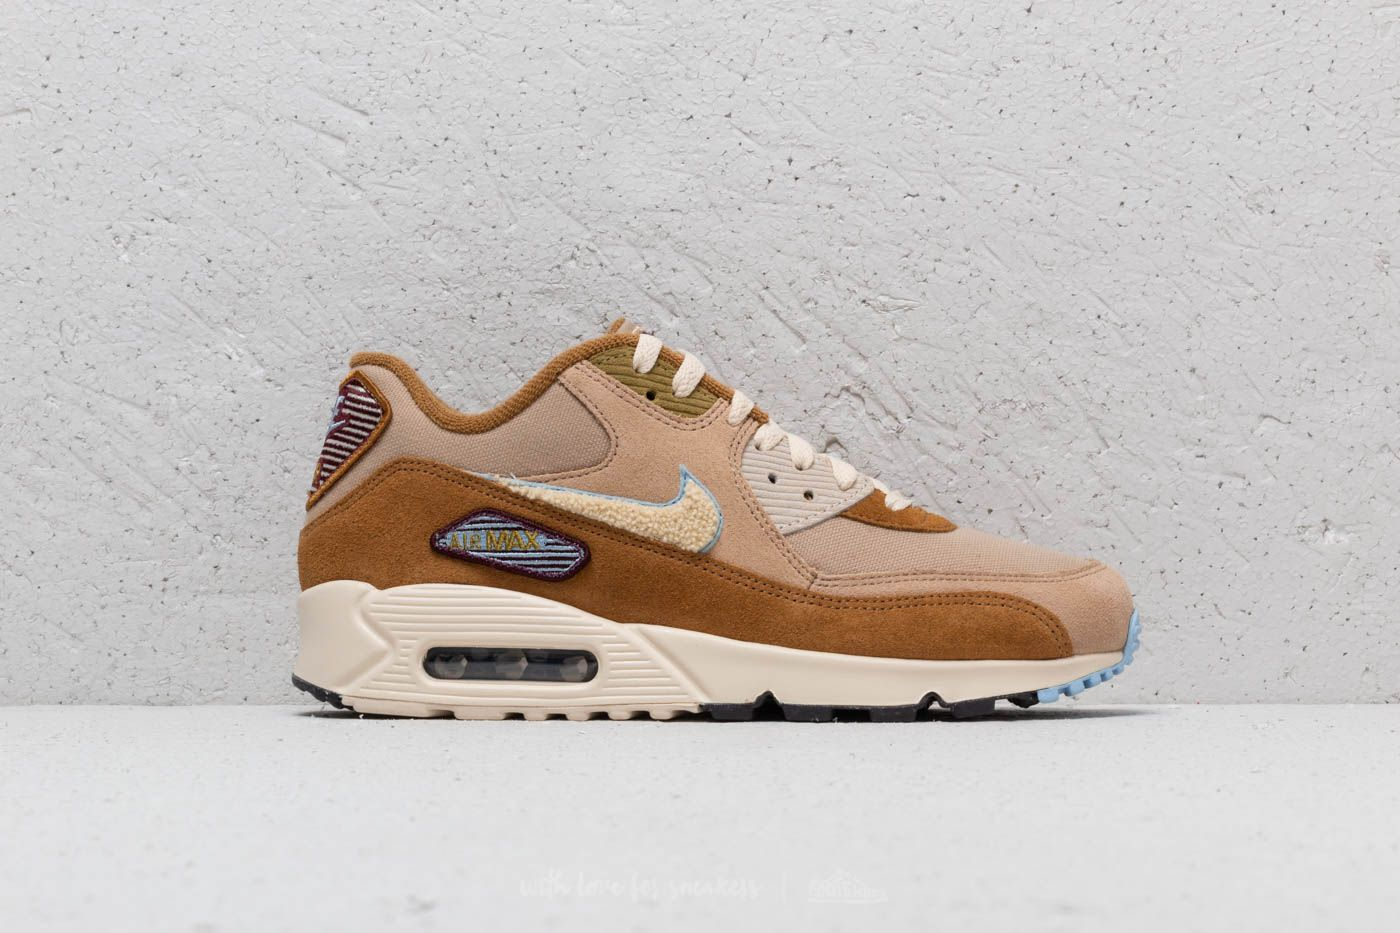 81d465ff4bd Nike Air Max 90 Premium SE Muted Bronze  Light Cream at a great price 100